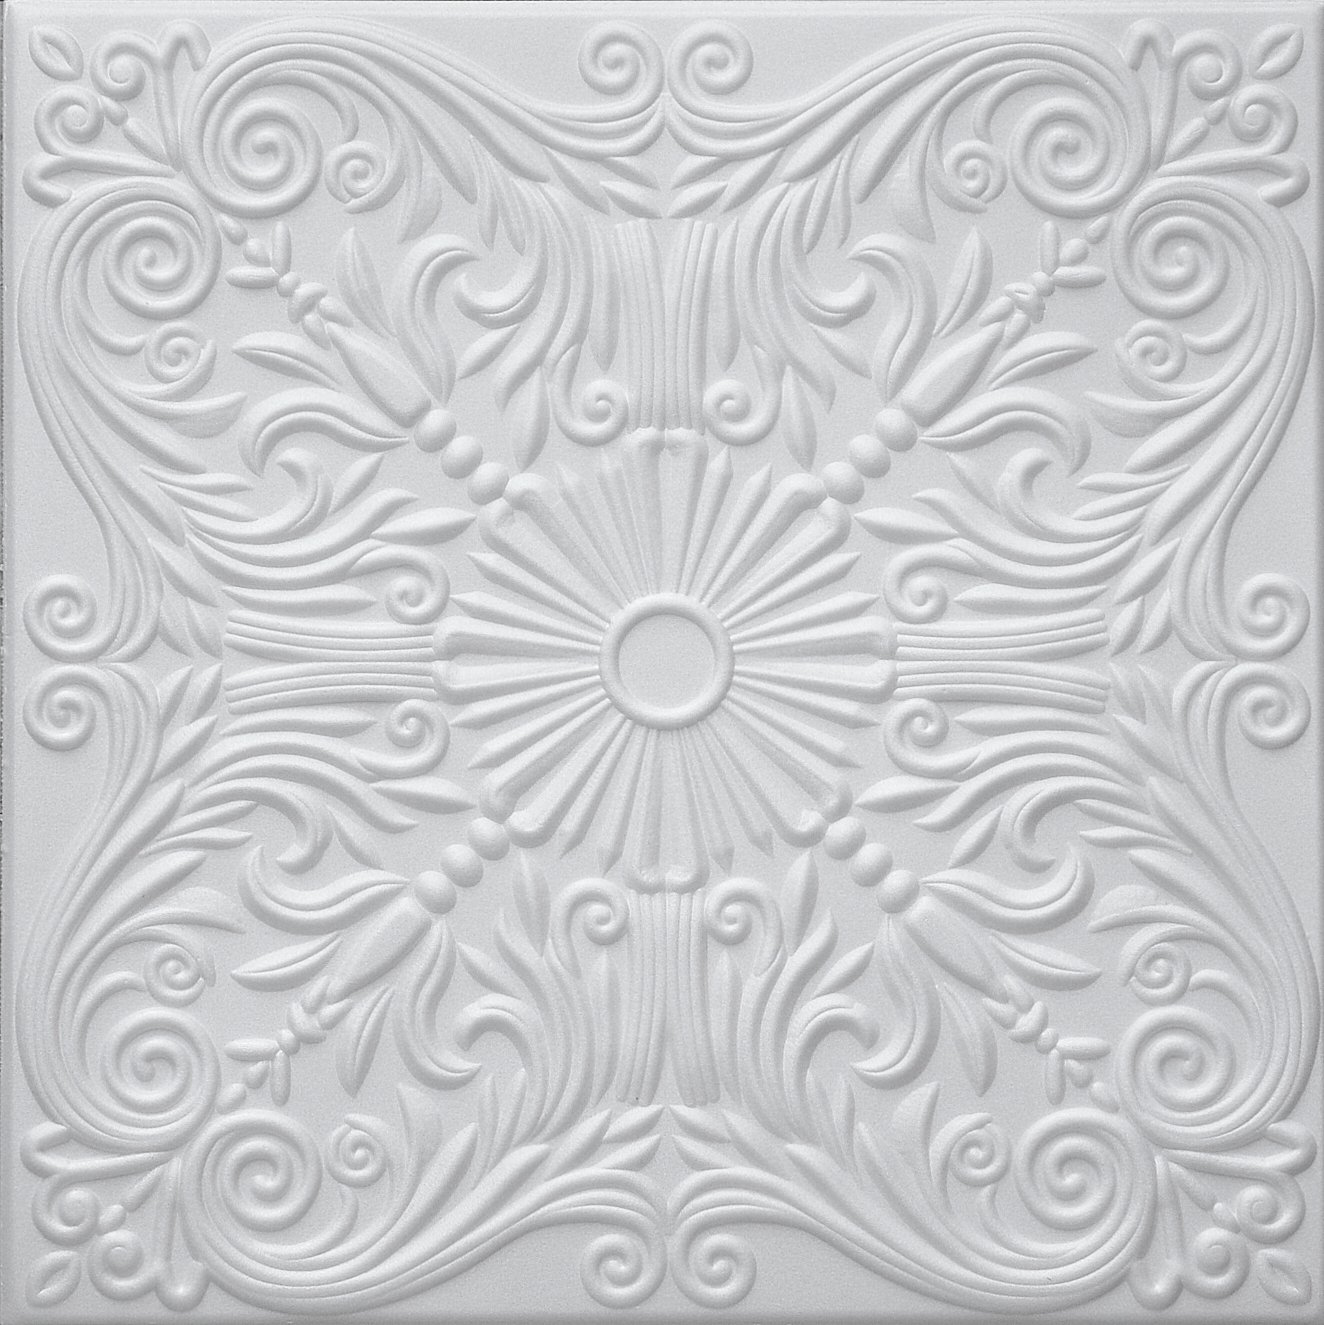 RM-39 Polystyrene (Styrofoam) Decorative Ceiling Tile to cover popcorn (Pack of 8 white tiles). Easy paintable. Easy DIY glue up application on most flat ceiling surfaces or over popcorn. Elegant Classic Design. TRM